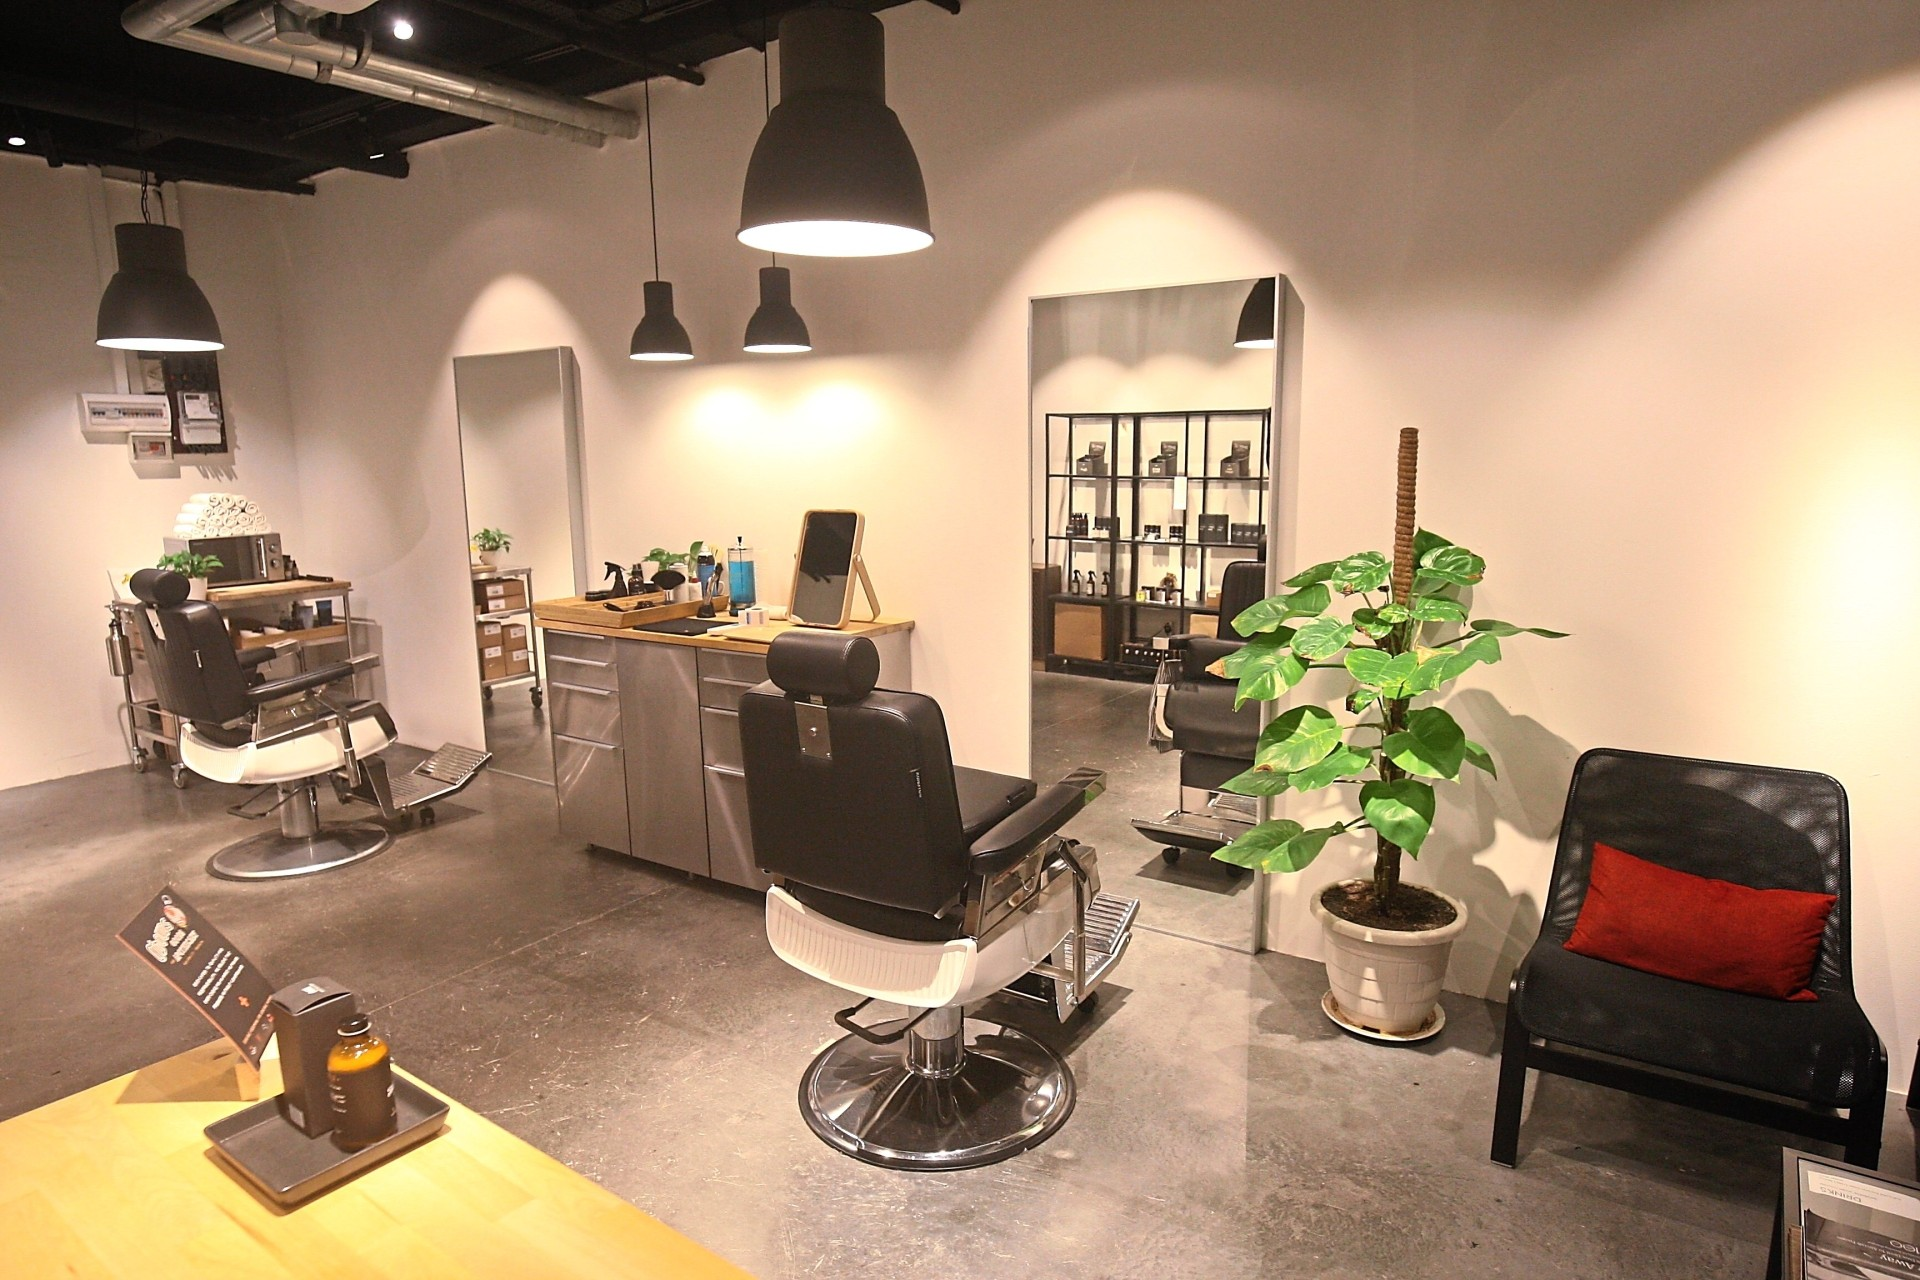 Sweeney Ted Barbershop offers a minimalist interior that is calm and devoid of clutter. Photo: FAIHAN GHANI/The Star